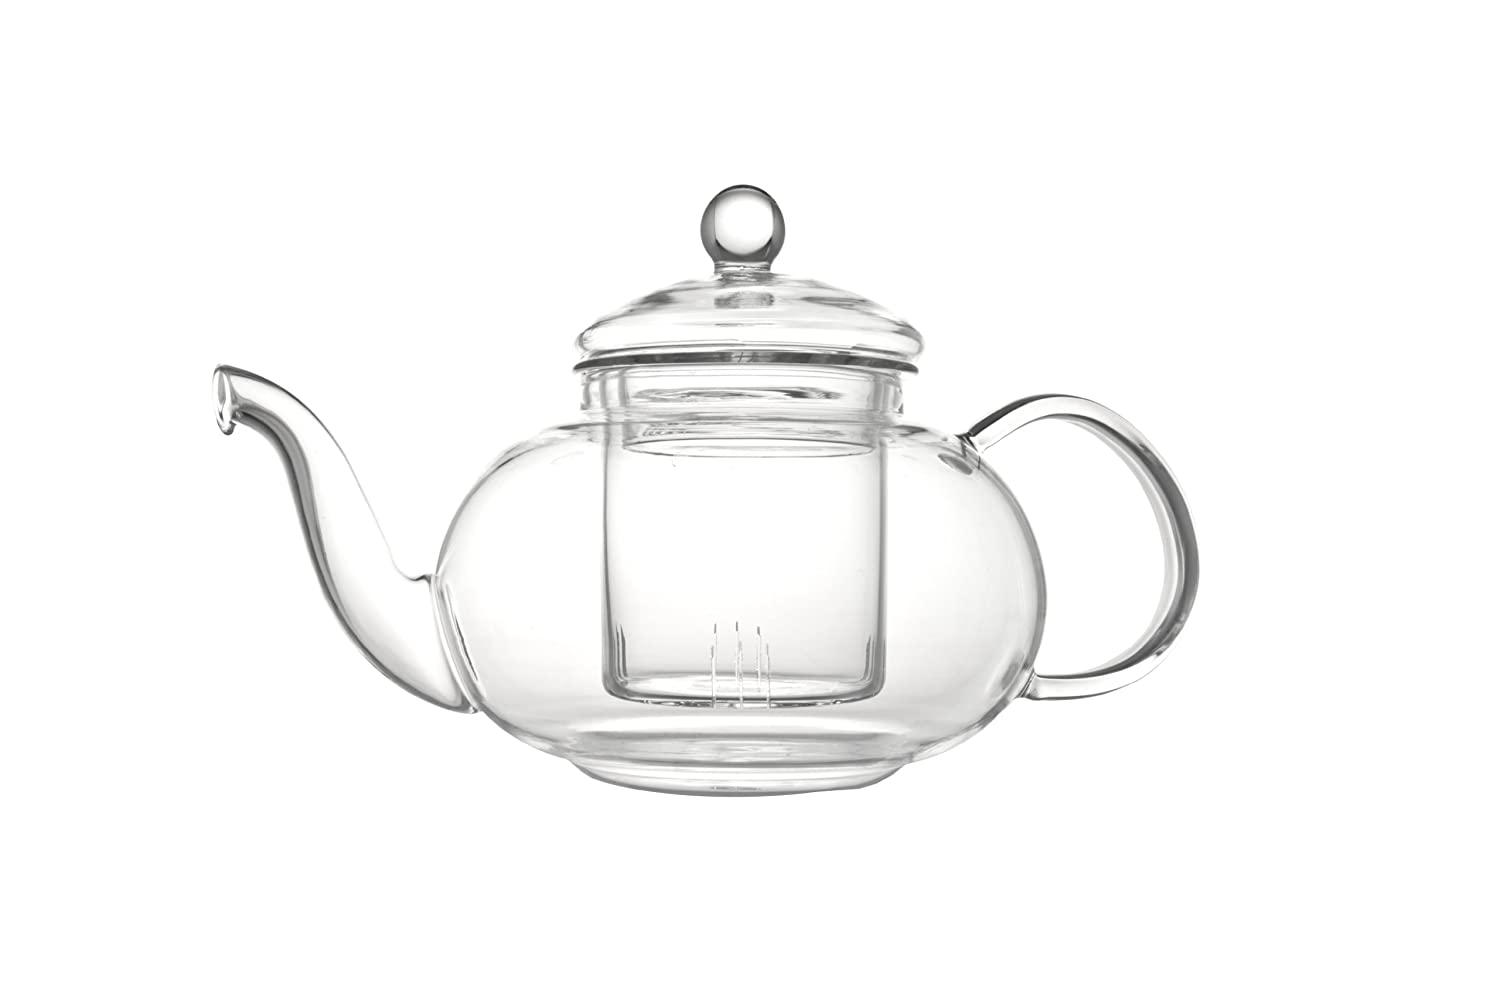 Bredemeijer Verona Single-Walled Glass Teapot, Transparent, 0.5 Litre Bredemeijer Group BV 1464